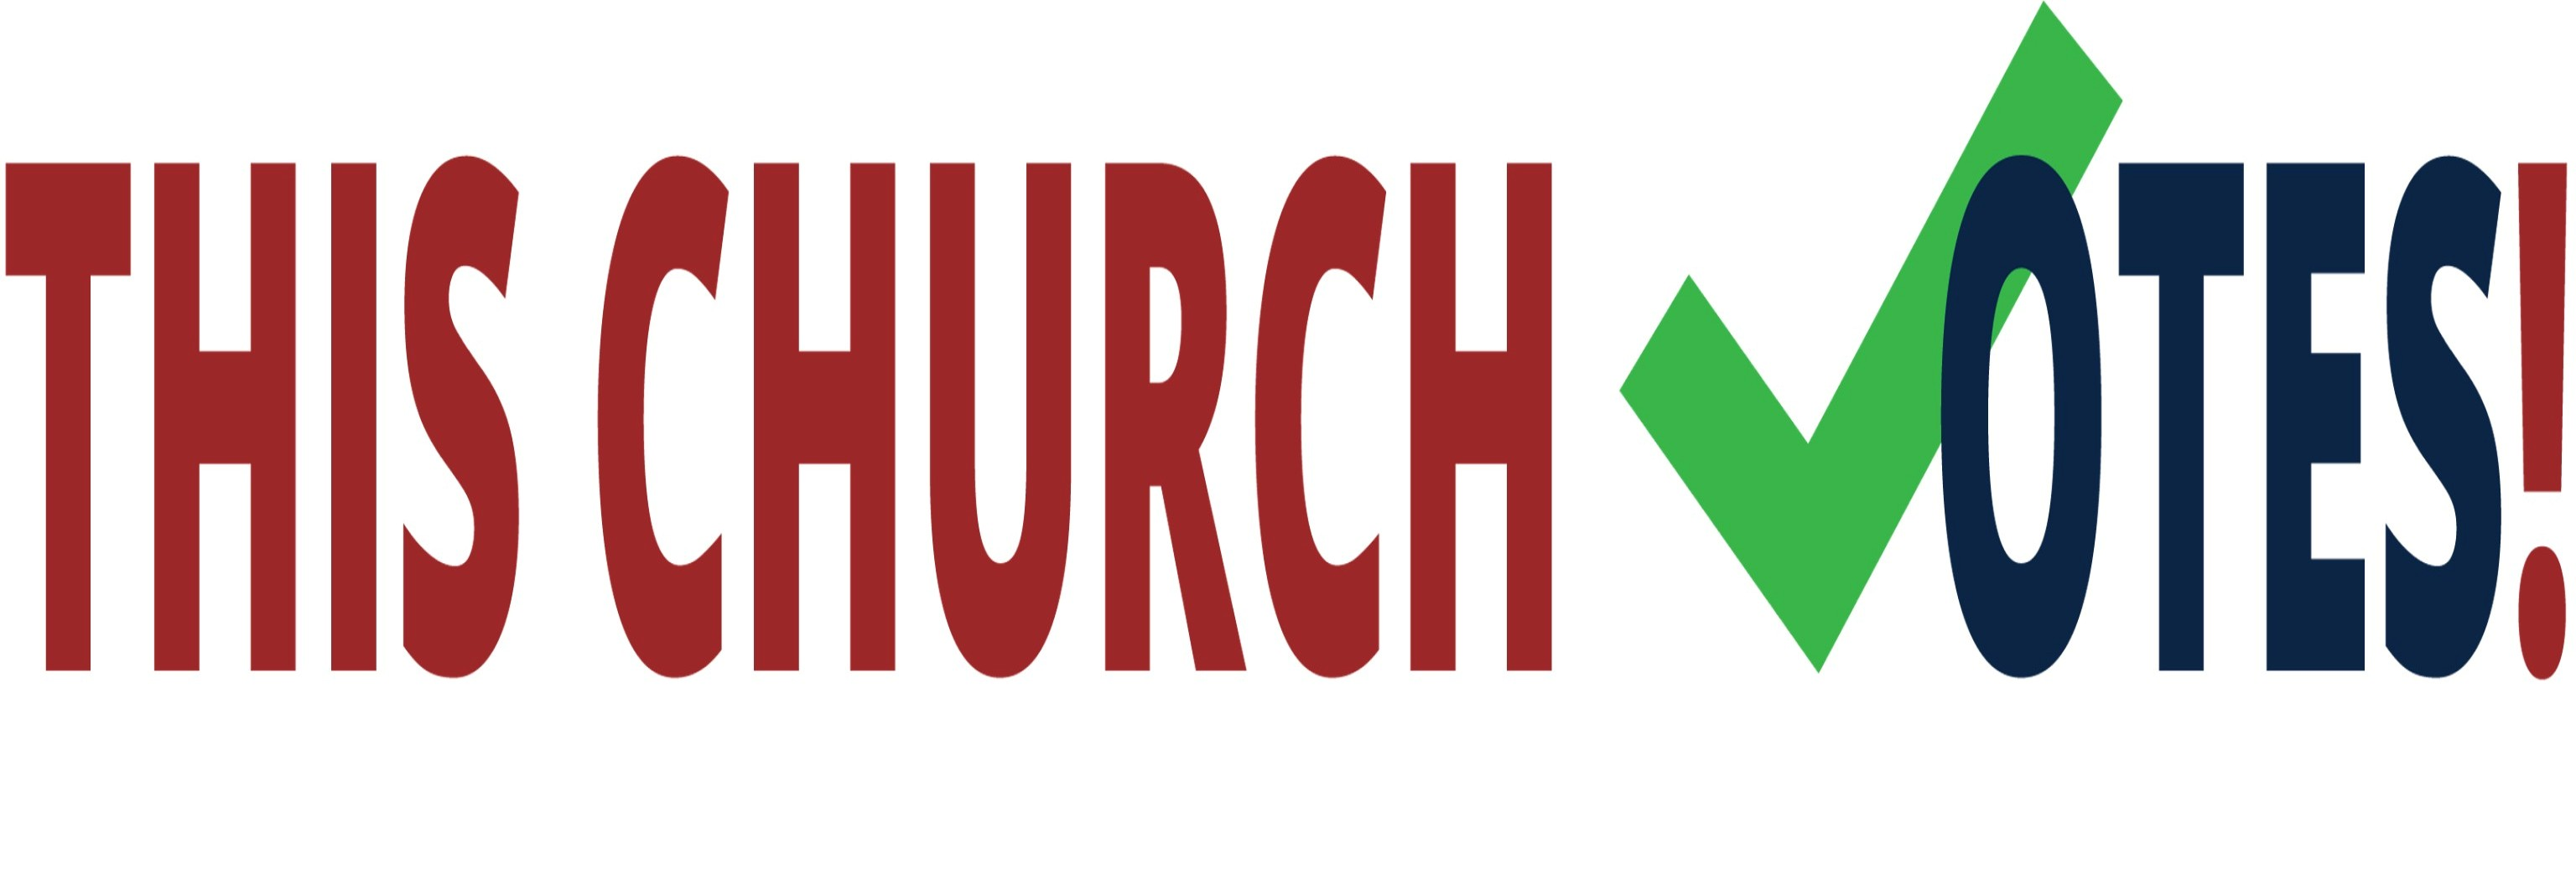 Maximizing Your Church's Voter Turnout